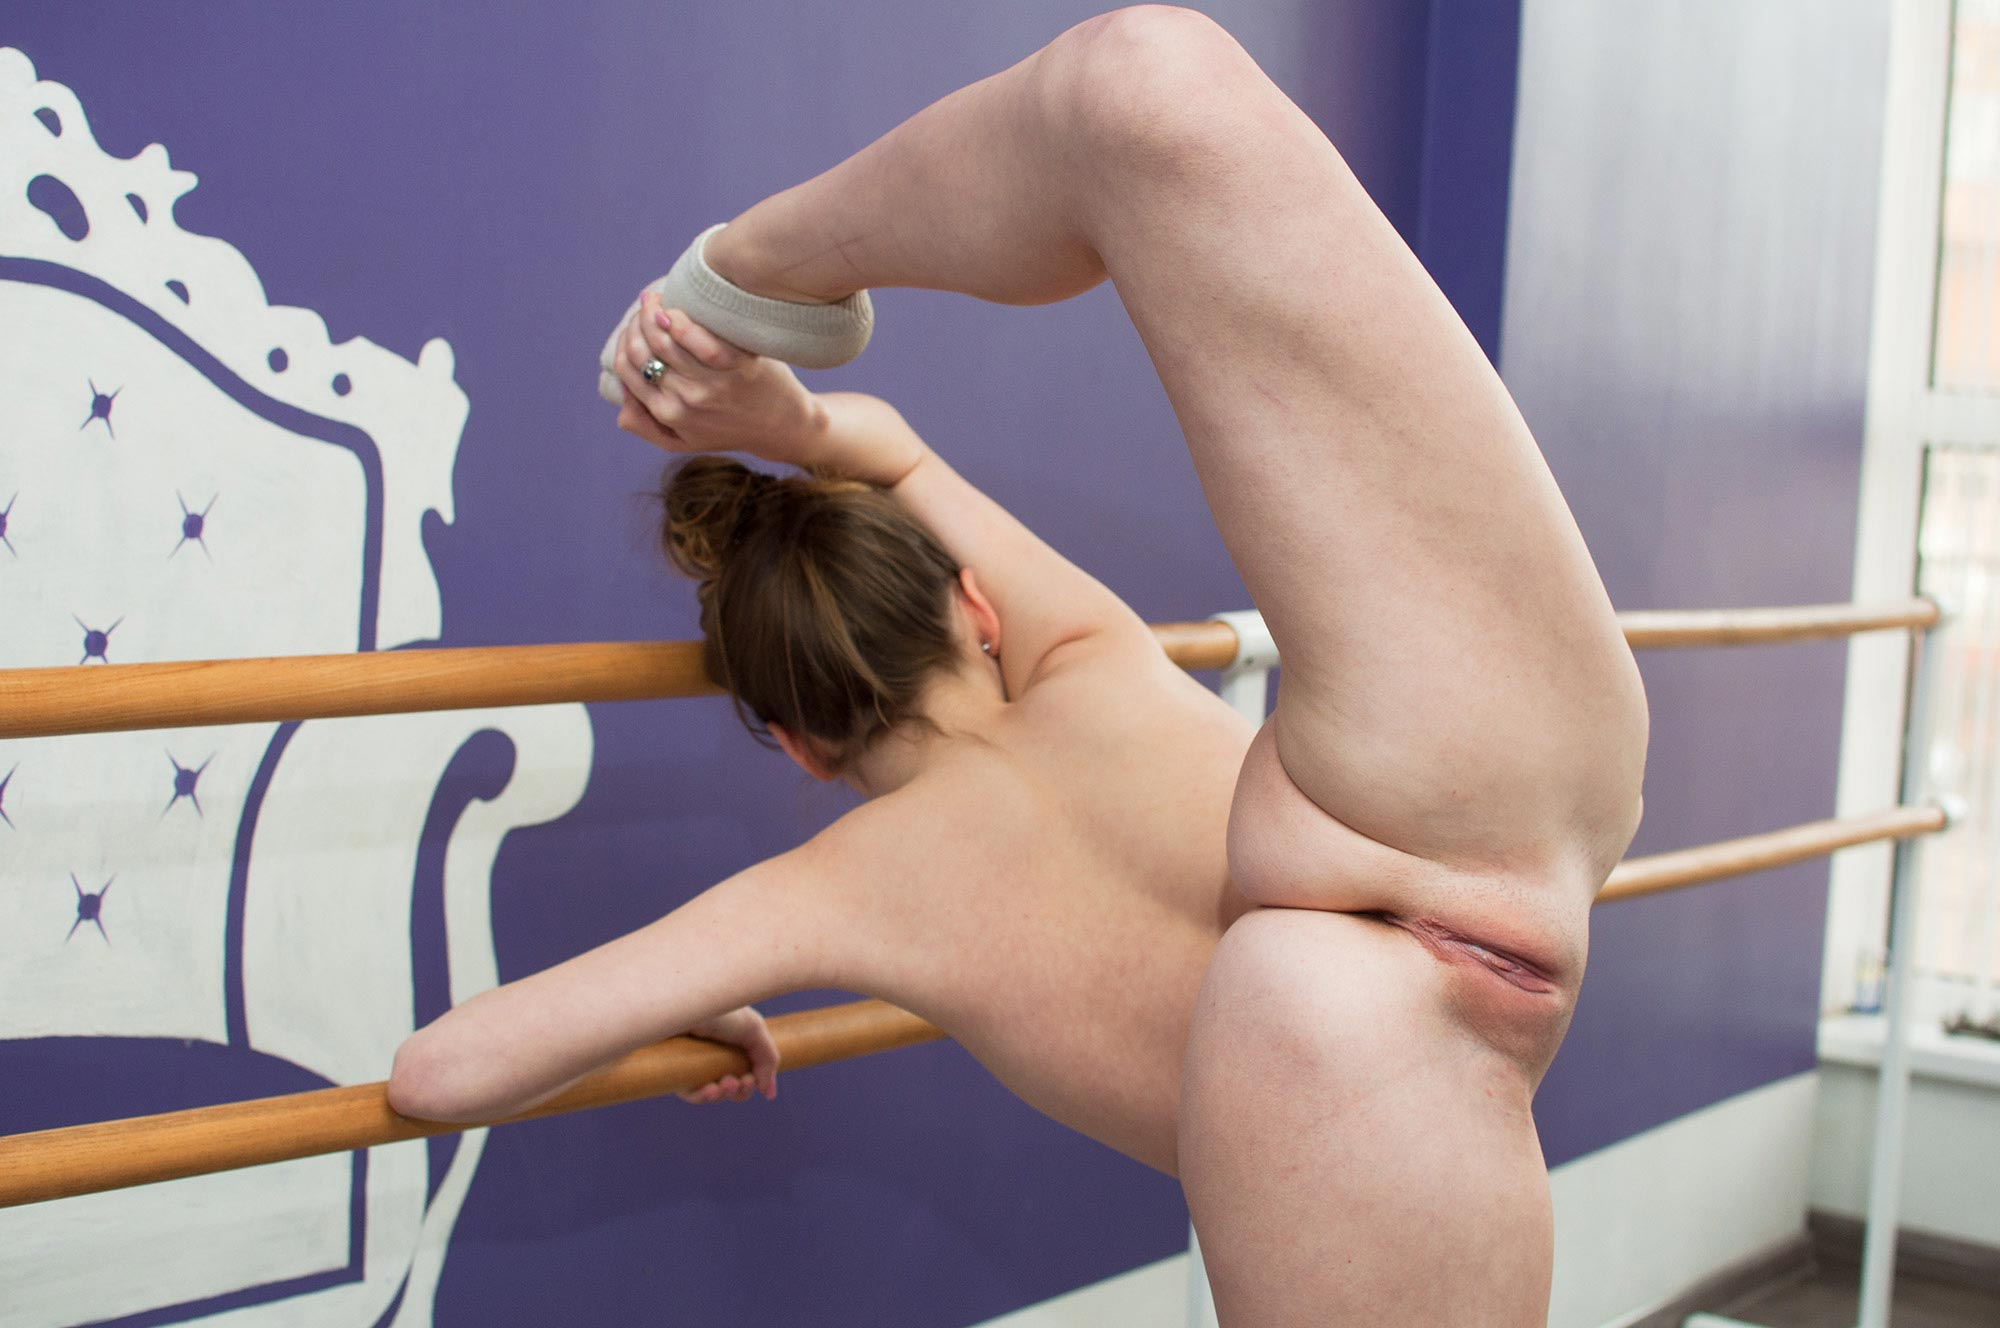 Naked ballet: flexible videos and photos with nude ballerinas